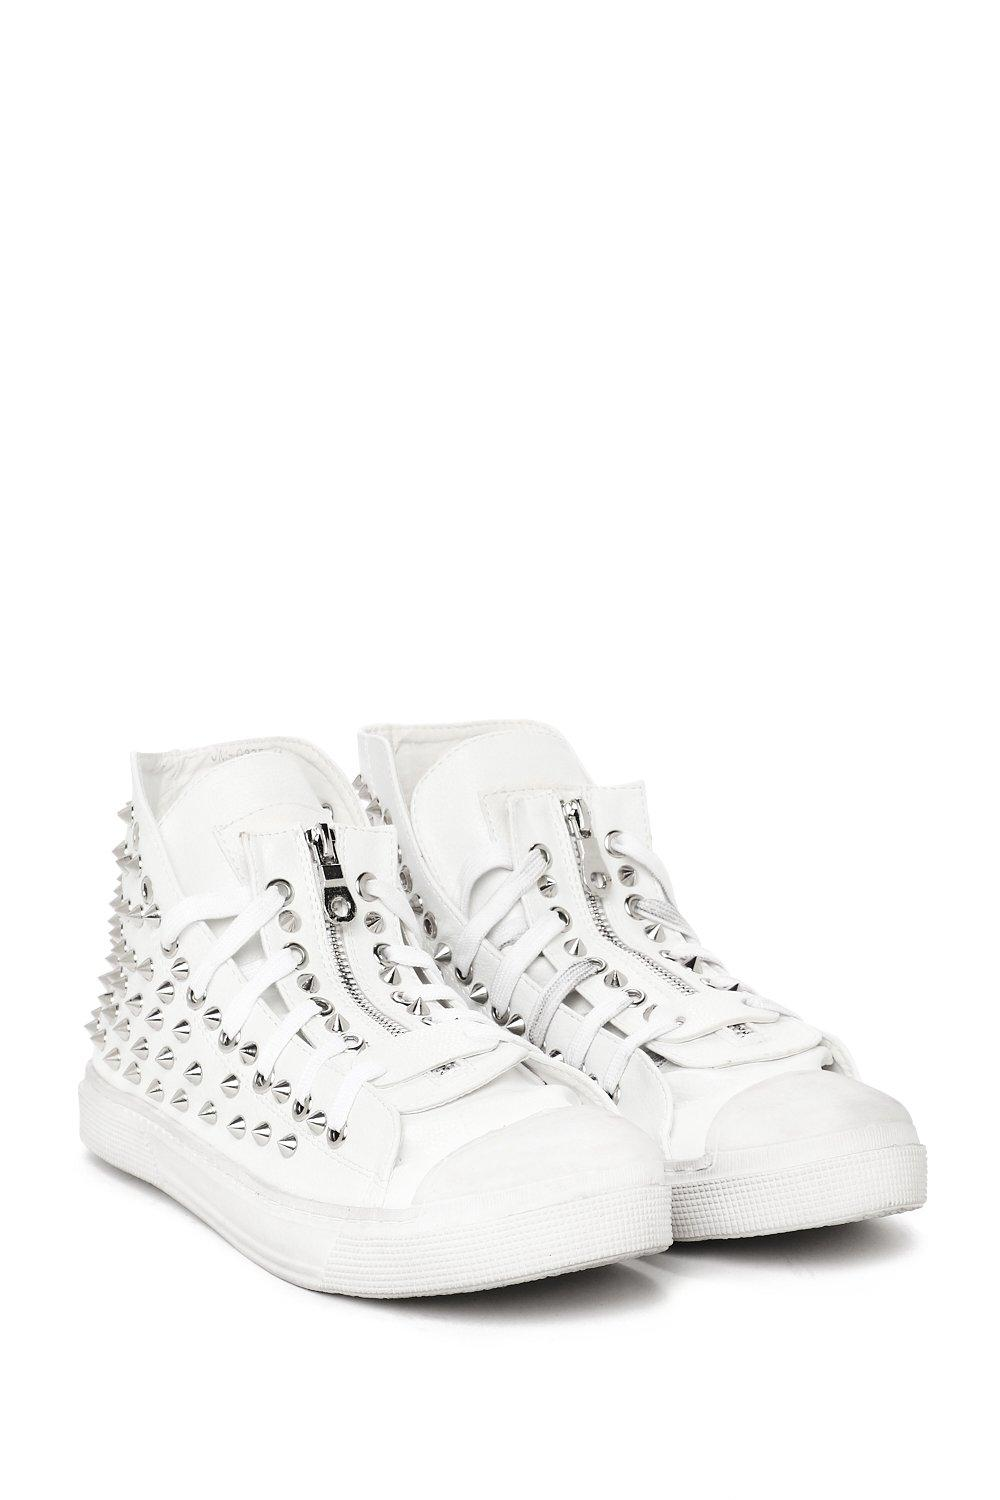 Leave Your Mark Studded Sneaker free shipping view low shipping fee sale online clearance ebay best sale for sale V3jvJePgr